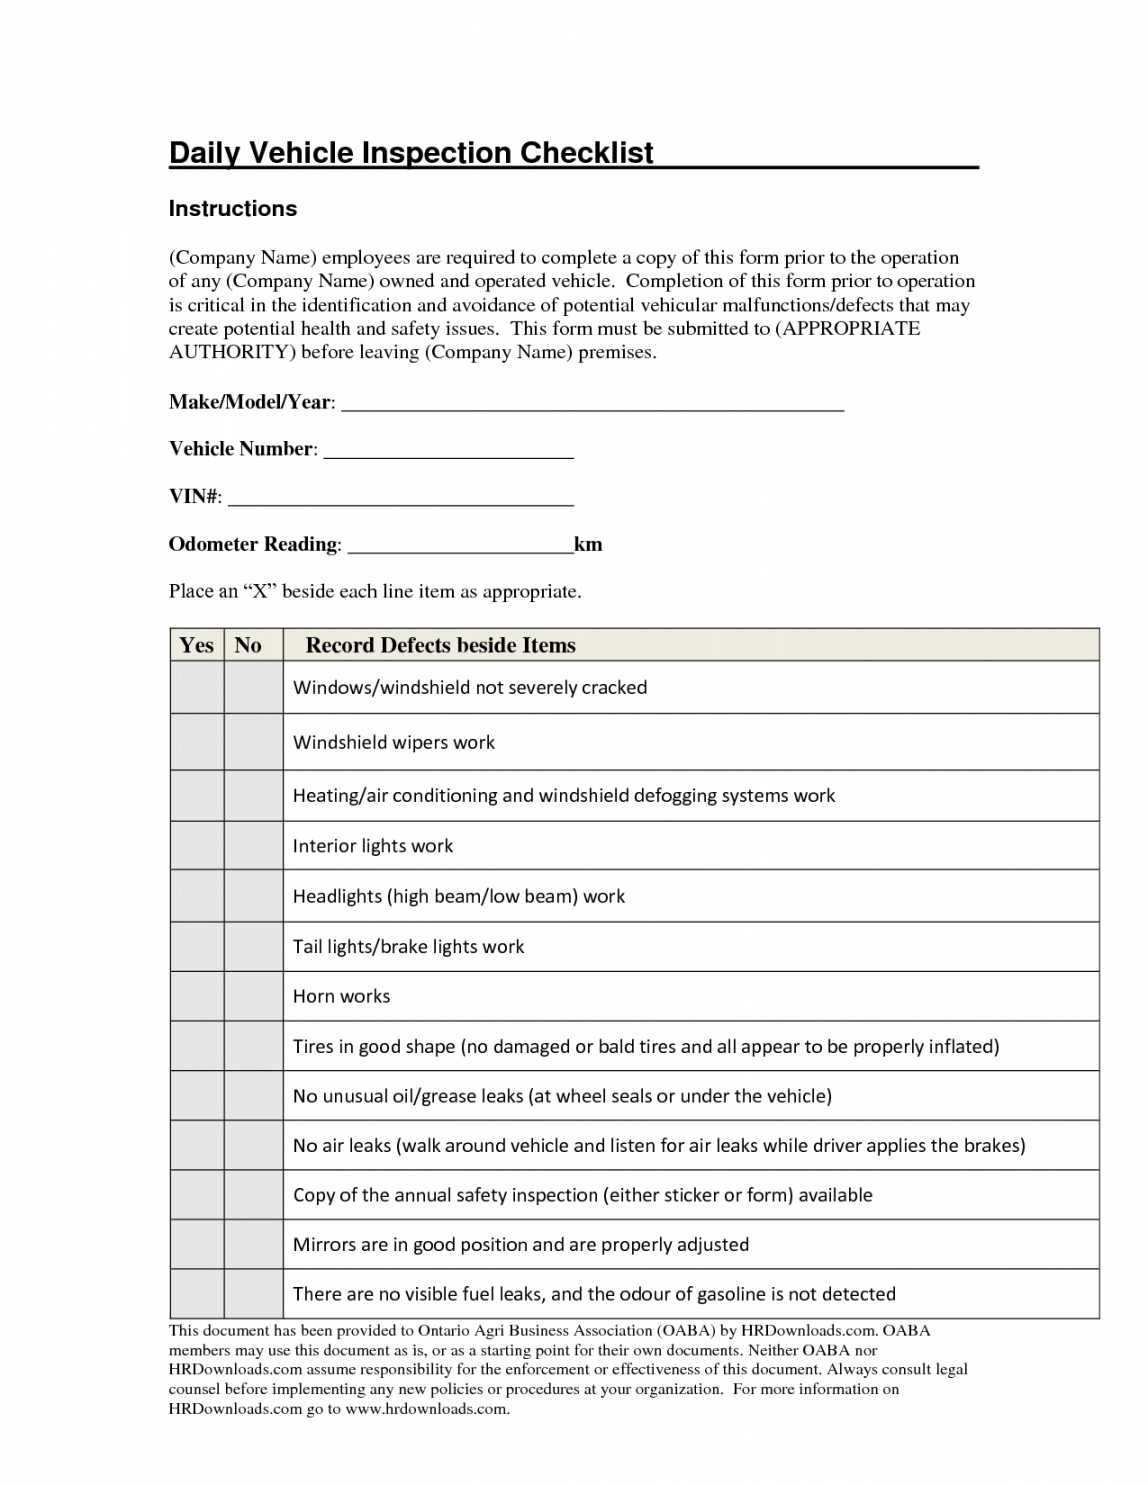 daily vehicle inspection checklist form image gallery  photogyps daily vehicle maintenance checklist template